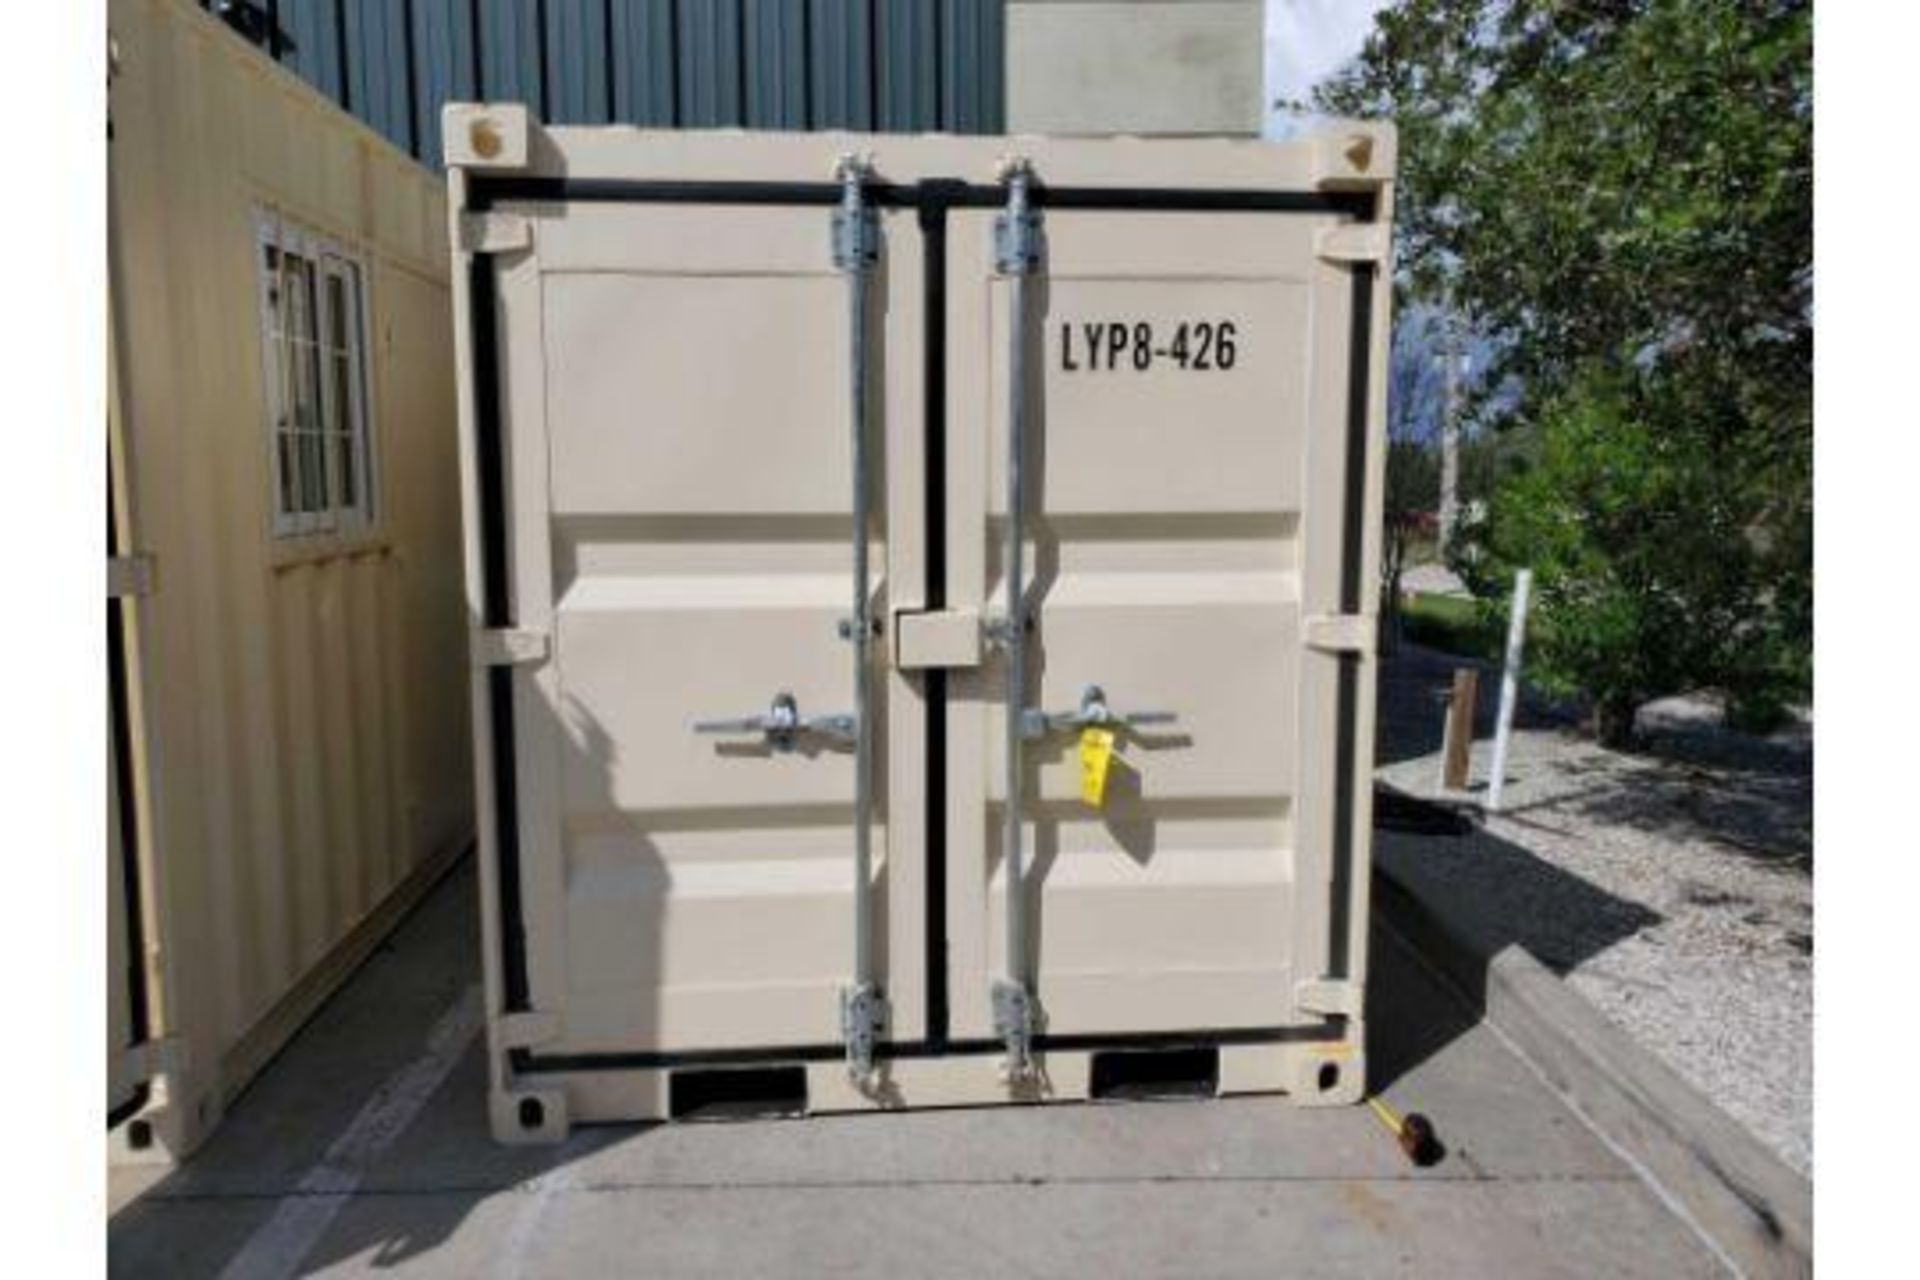 UNUSED 2020 SHIPPING/OFFICE CONTAINER WITH SIDE DOOR, FORK POCKETS, WINDOW - Image 3 of 7